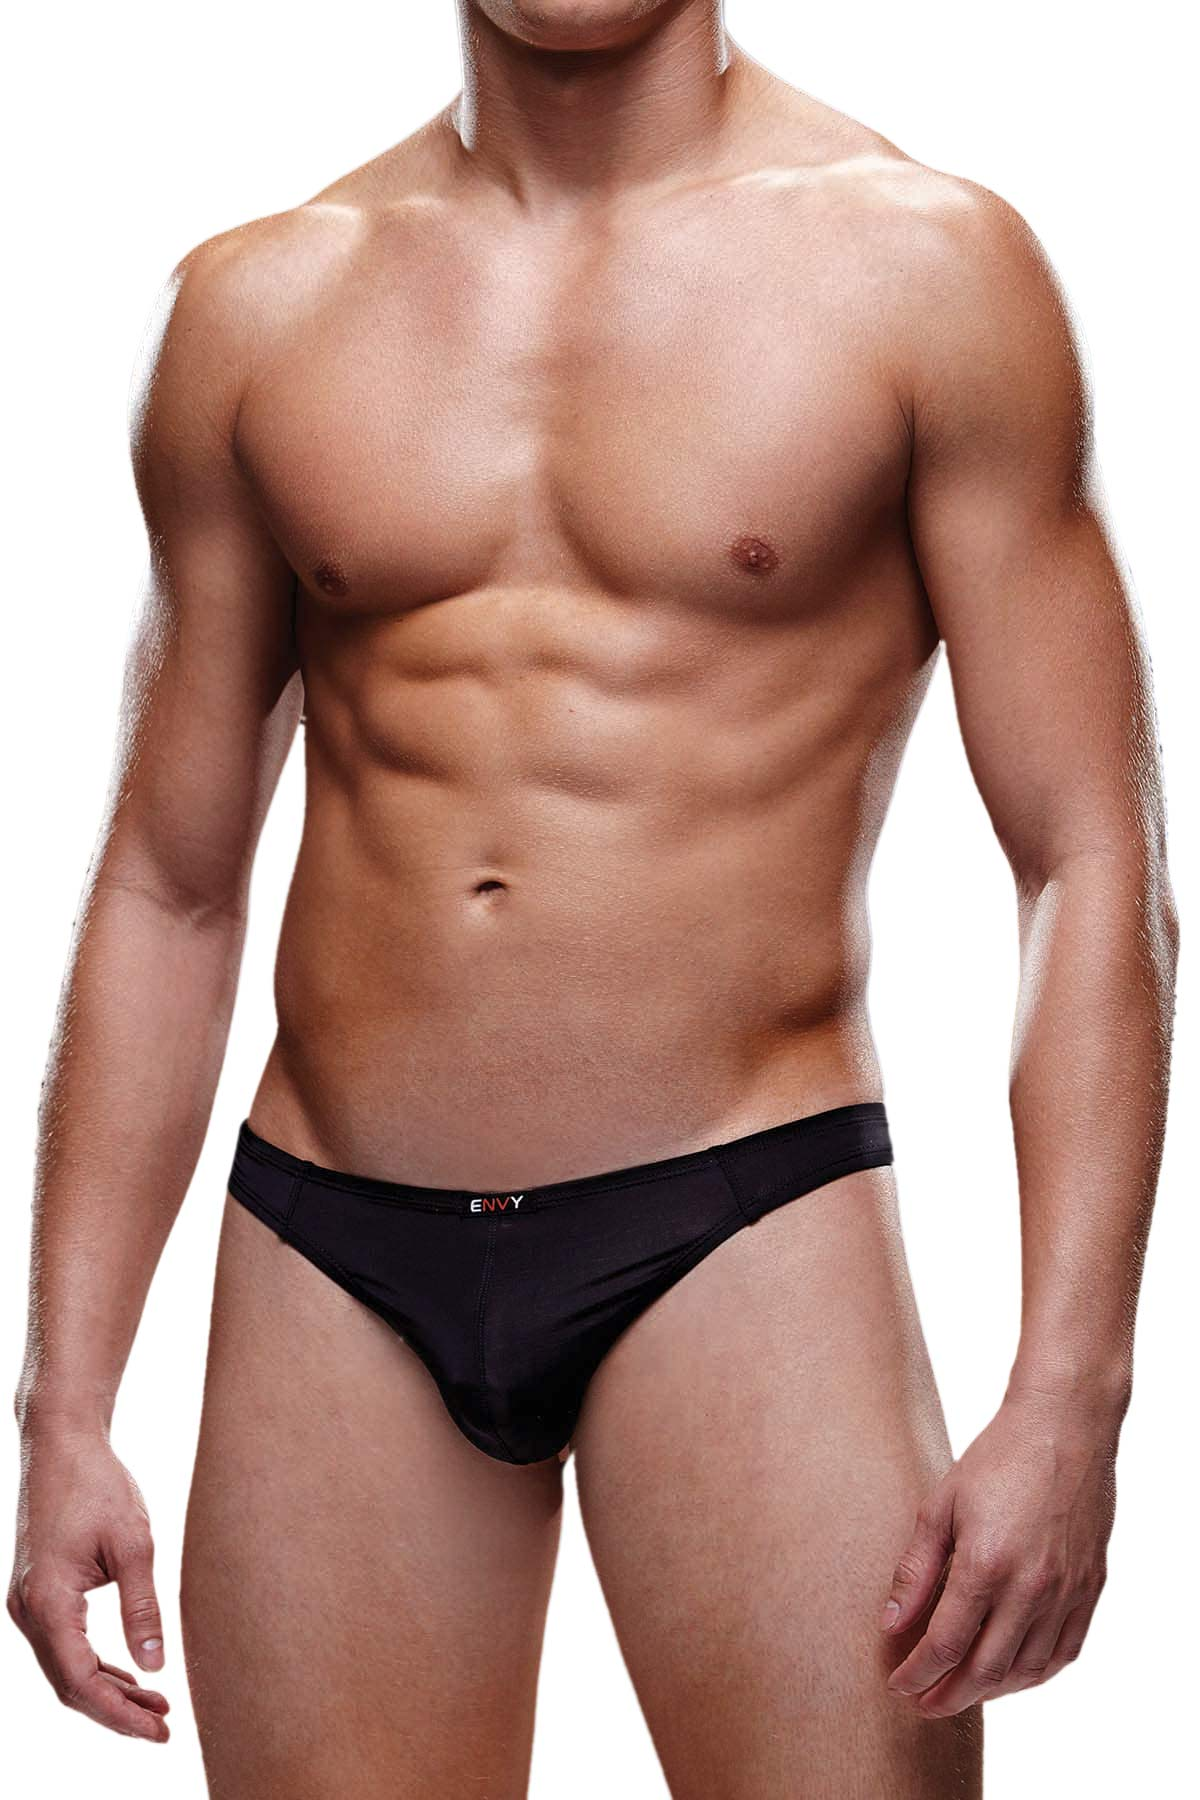 Envy Black Microfiber Thong